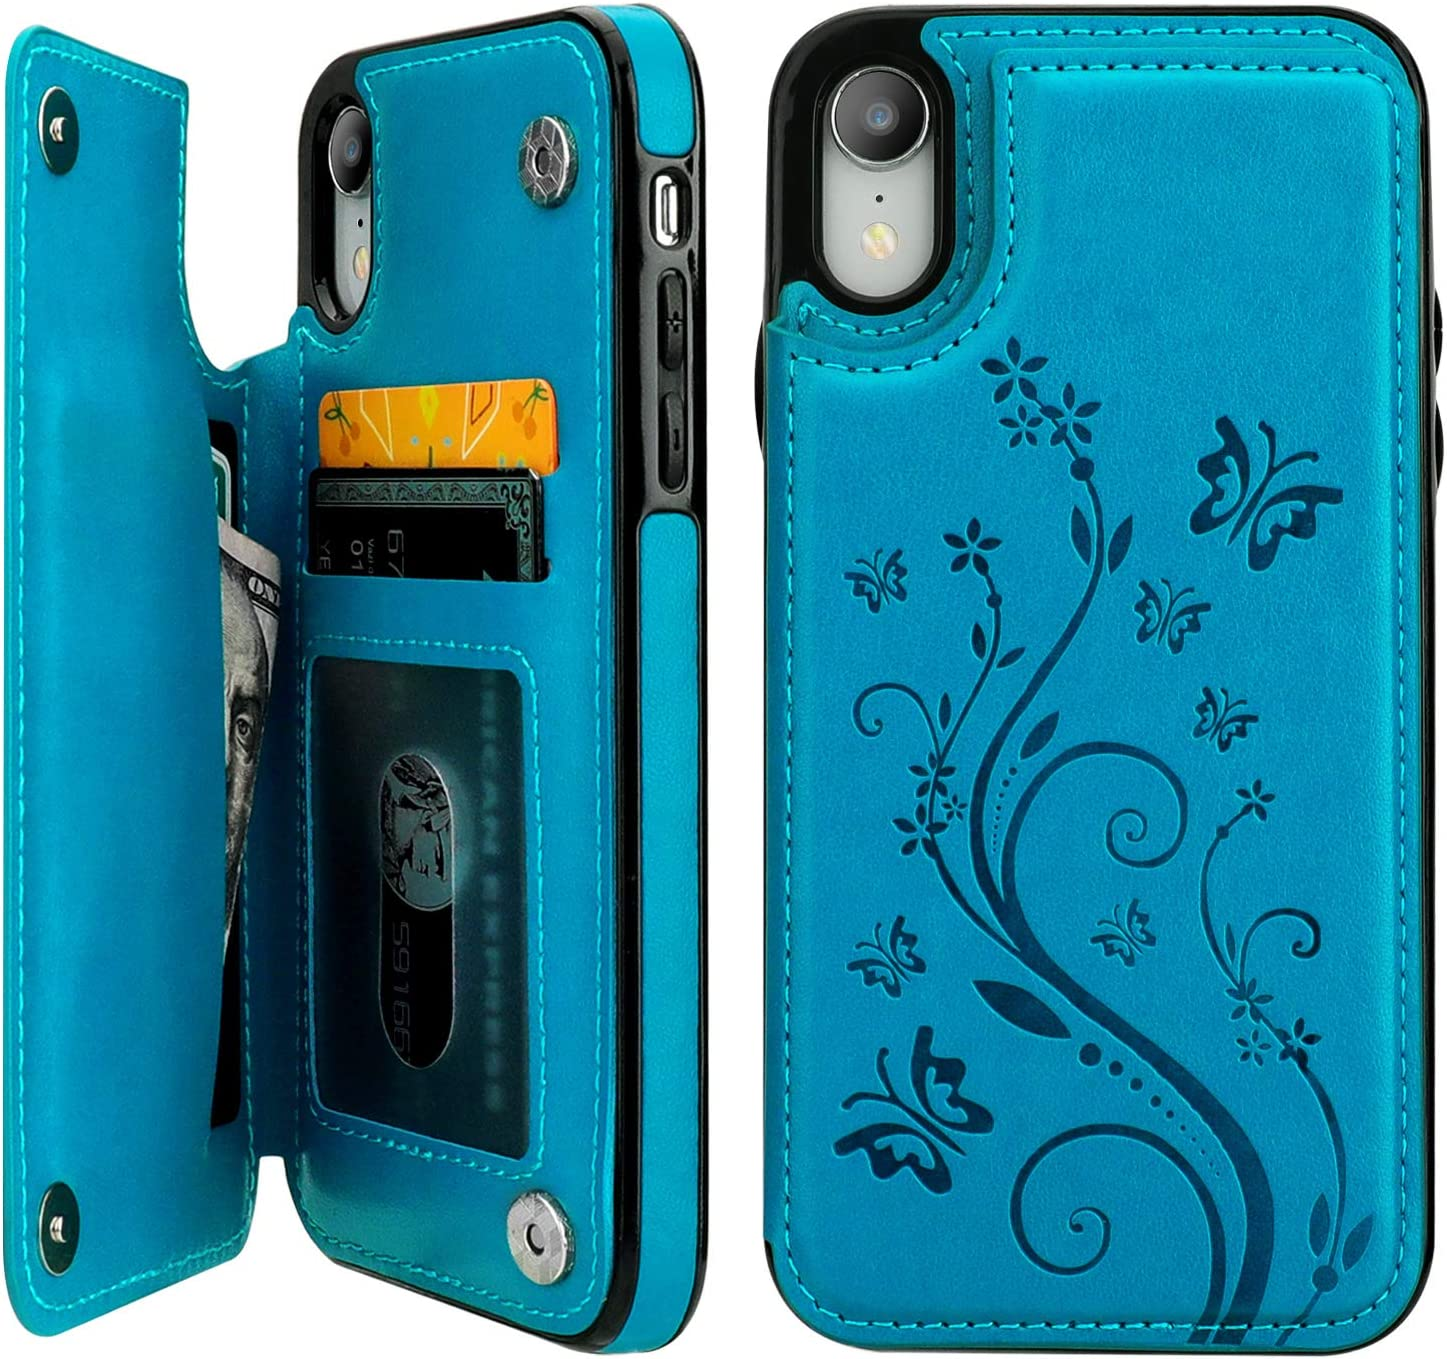 "Vaburs iPhone Xr Case Wallet with Card Holder, Embossed Butterfly Premium PU Leather Double Magnetic Buttons Flip Shockproof Protective Case Cover for iPhone Xr (6.1"", Blue)"